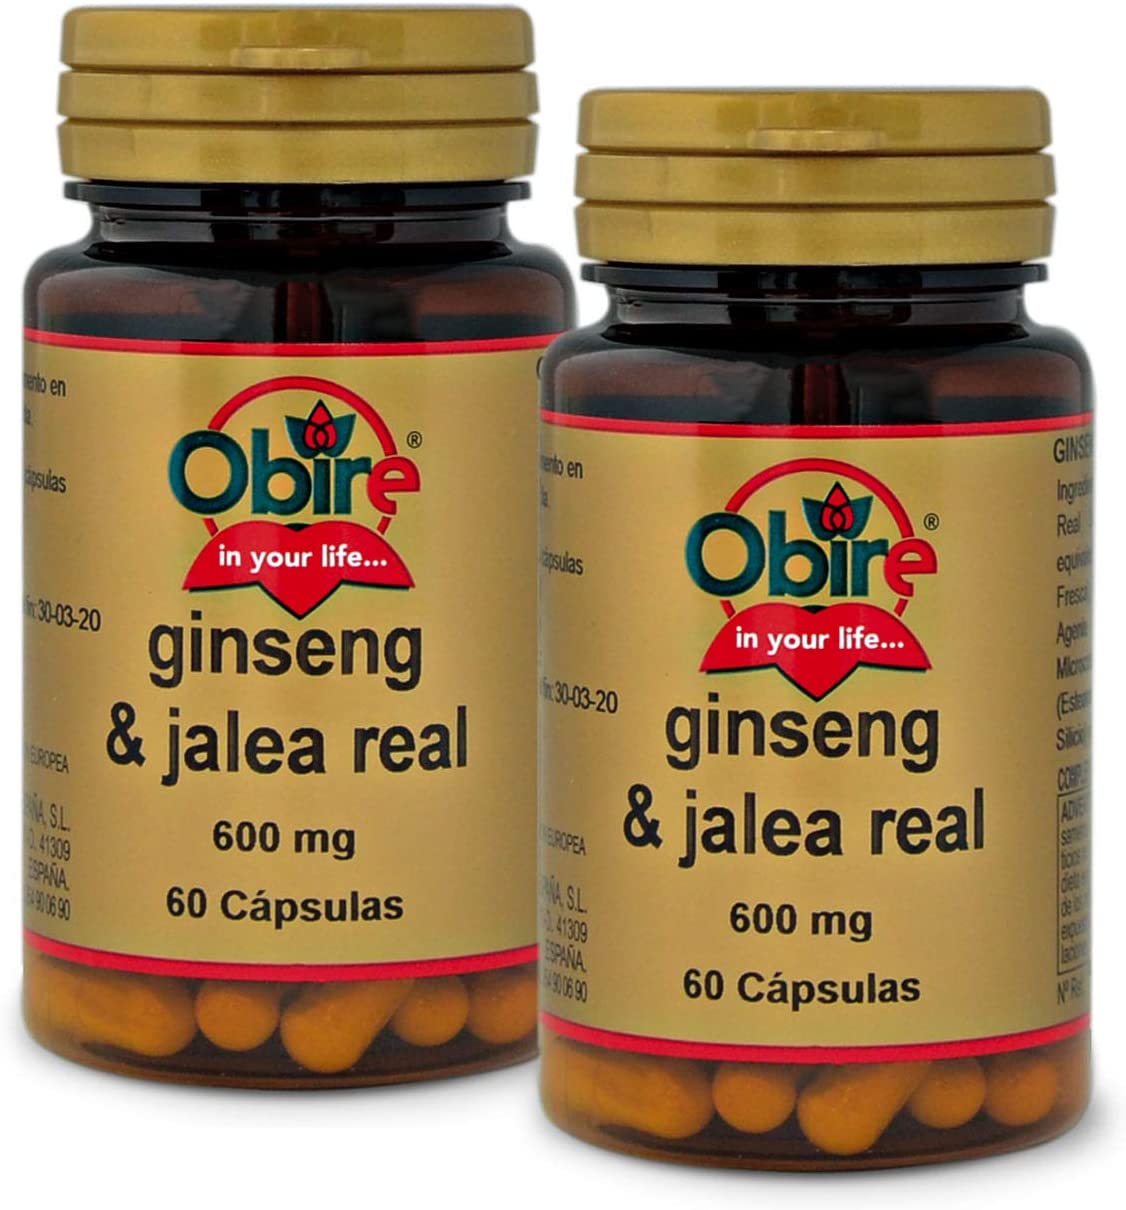 Ginseng & jalea real 600 mg. 60 capsulas (Pack 2 unid.)